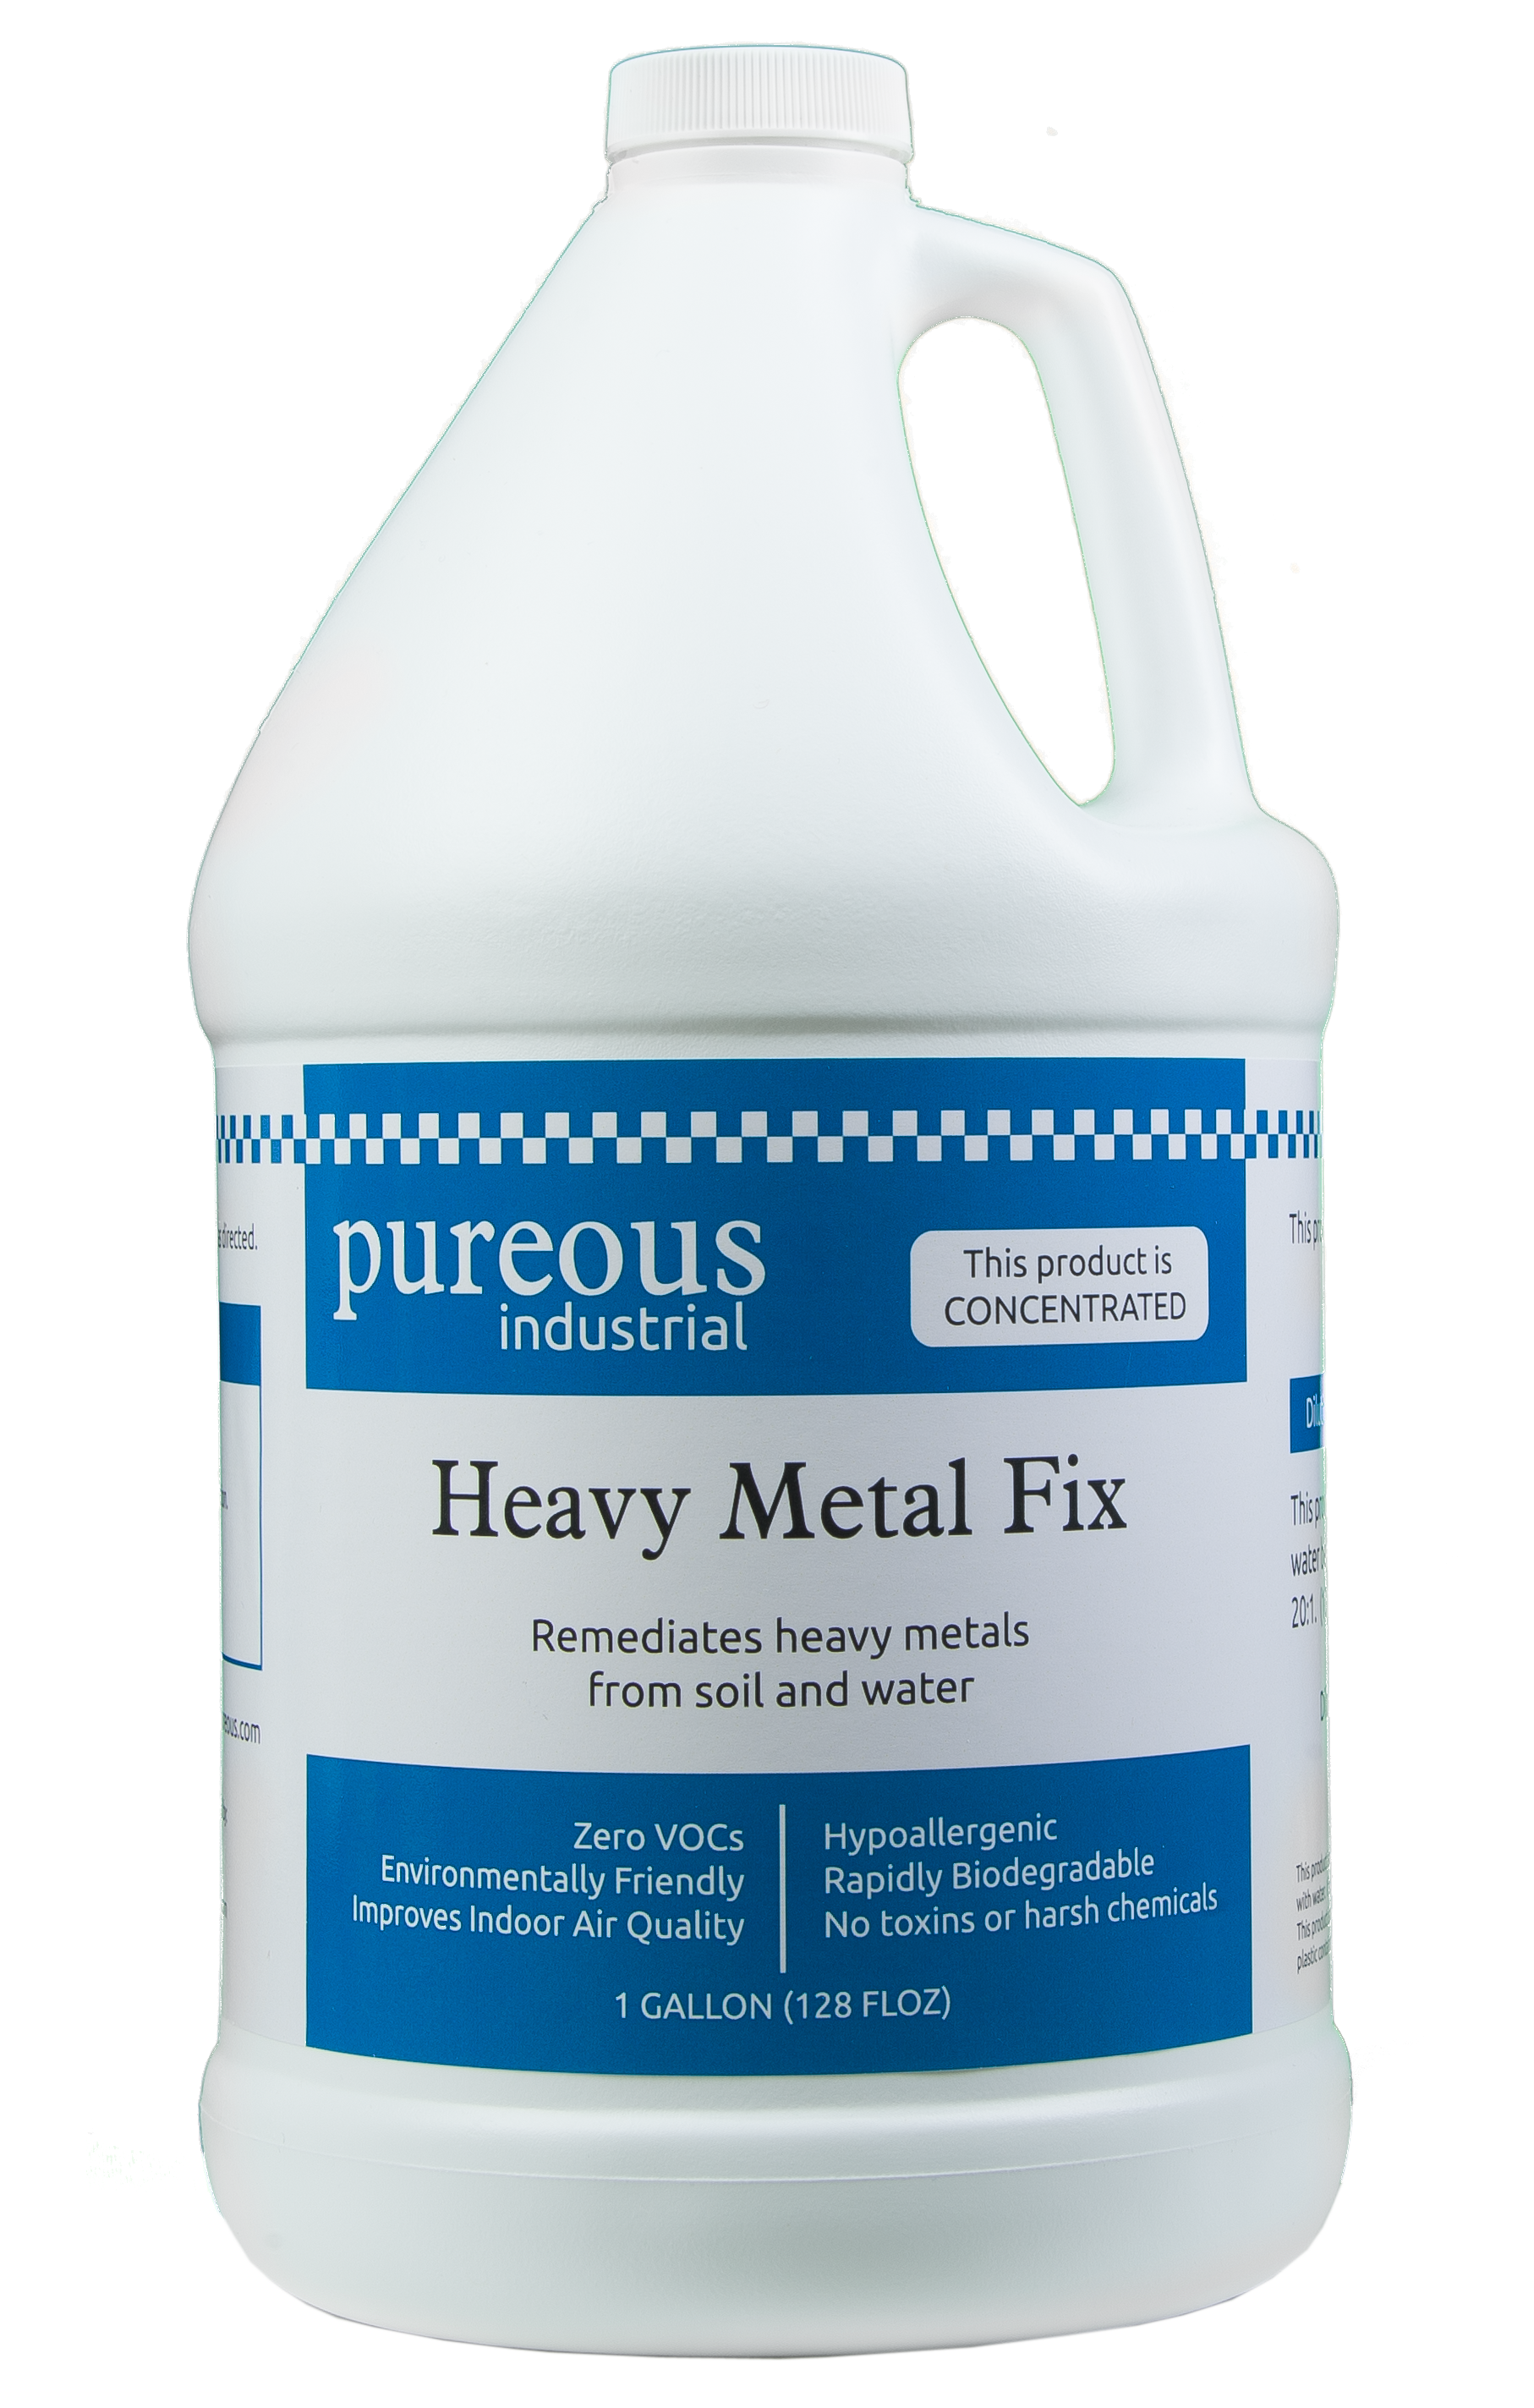 Heavy Metals Fix